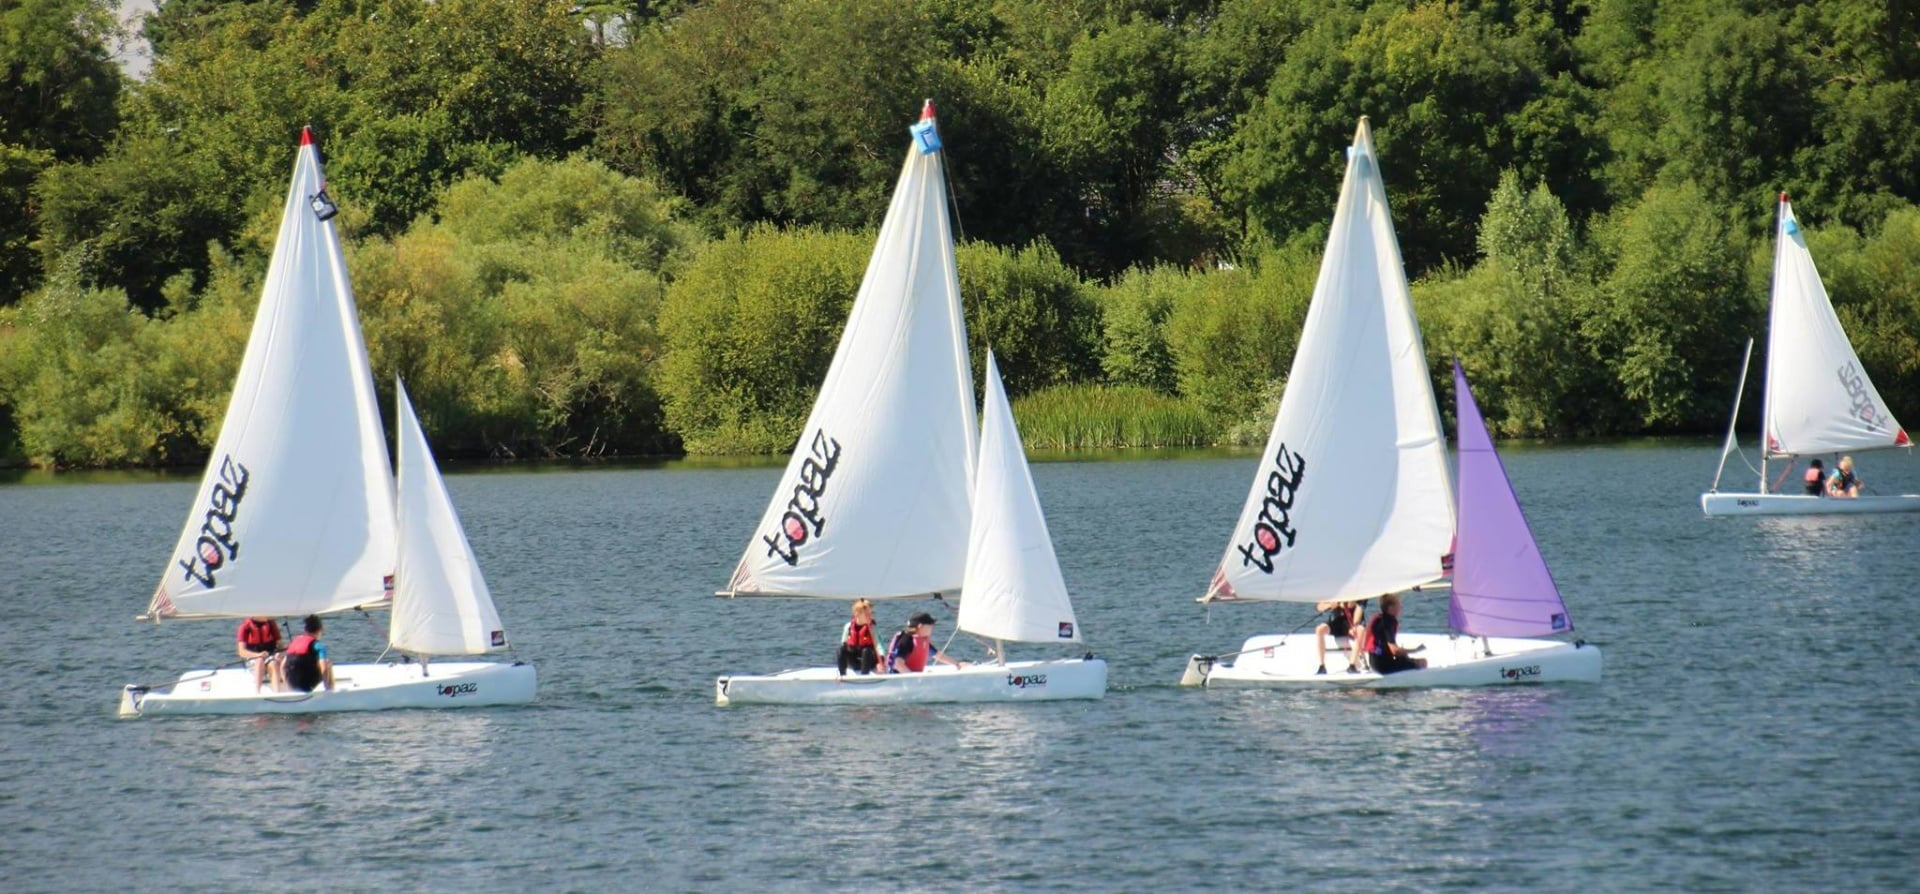 Dinghy Sailing Course - RYA L1 - Berkshire-3